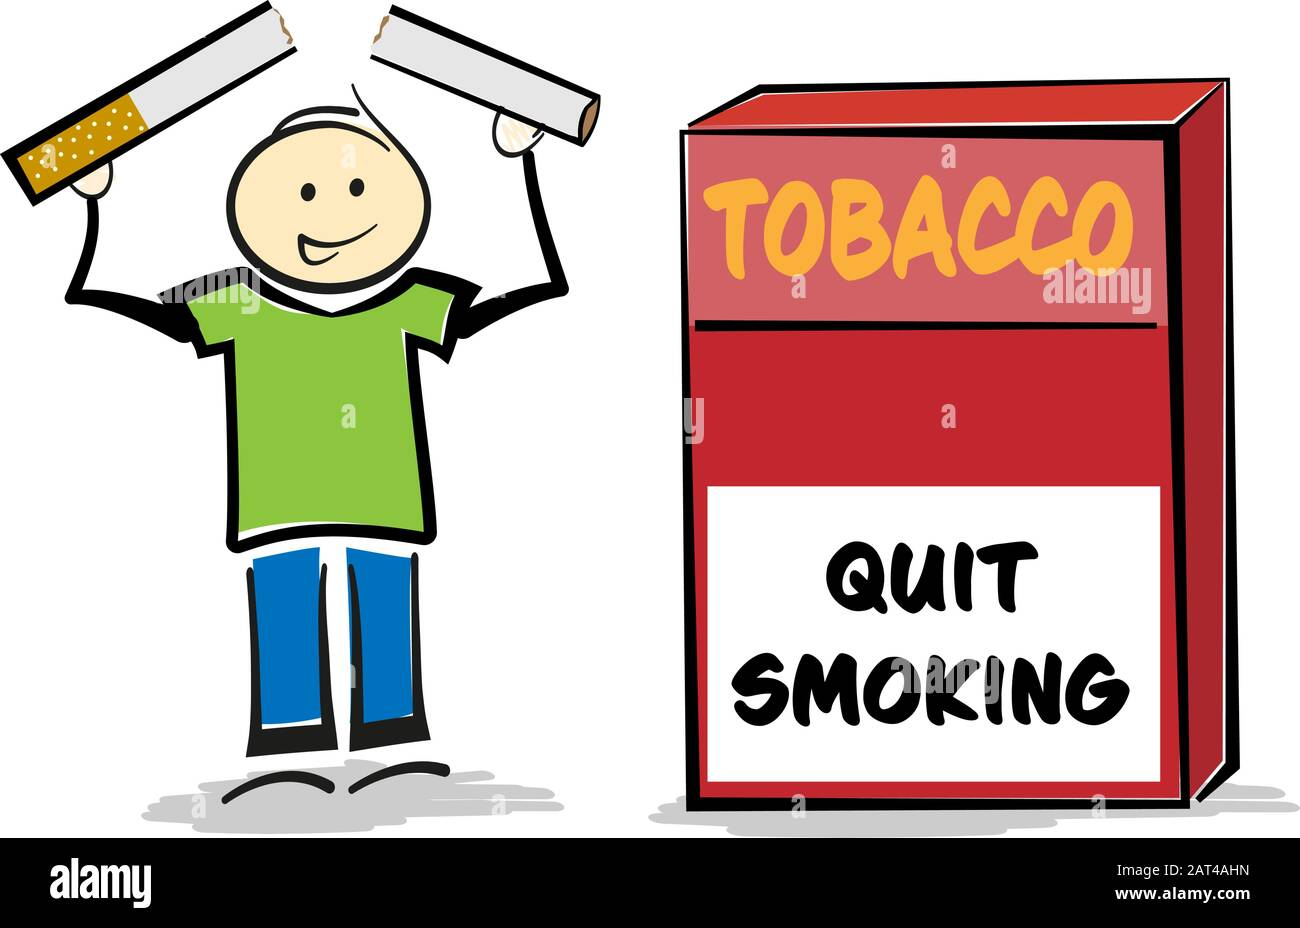 Man Smoking Cigarette Cartoon Illustration High Resolution Stock Photography And Images Alamy